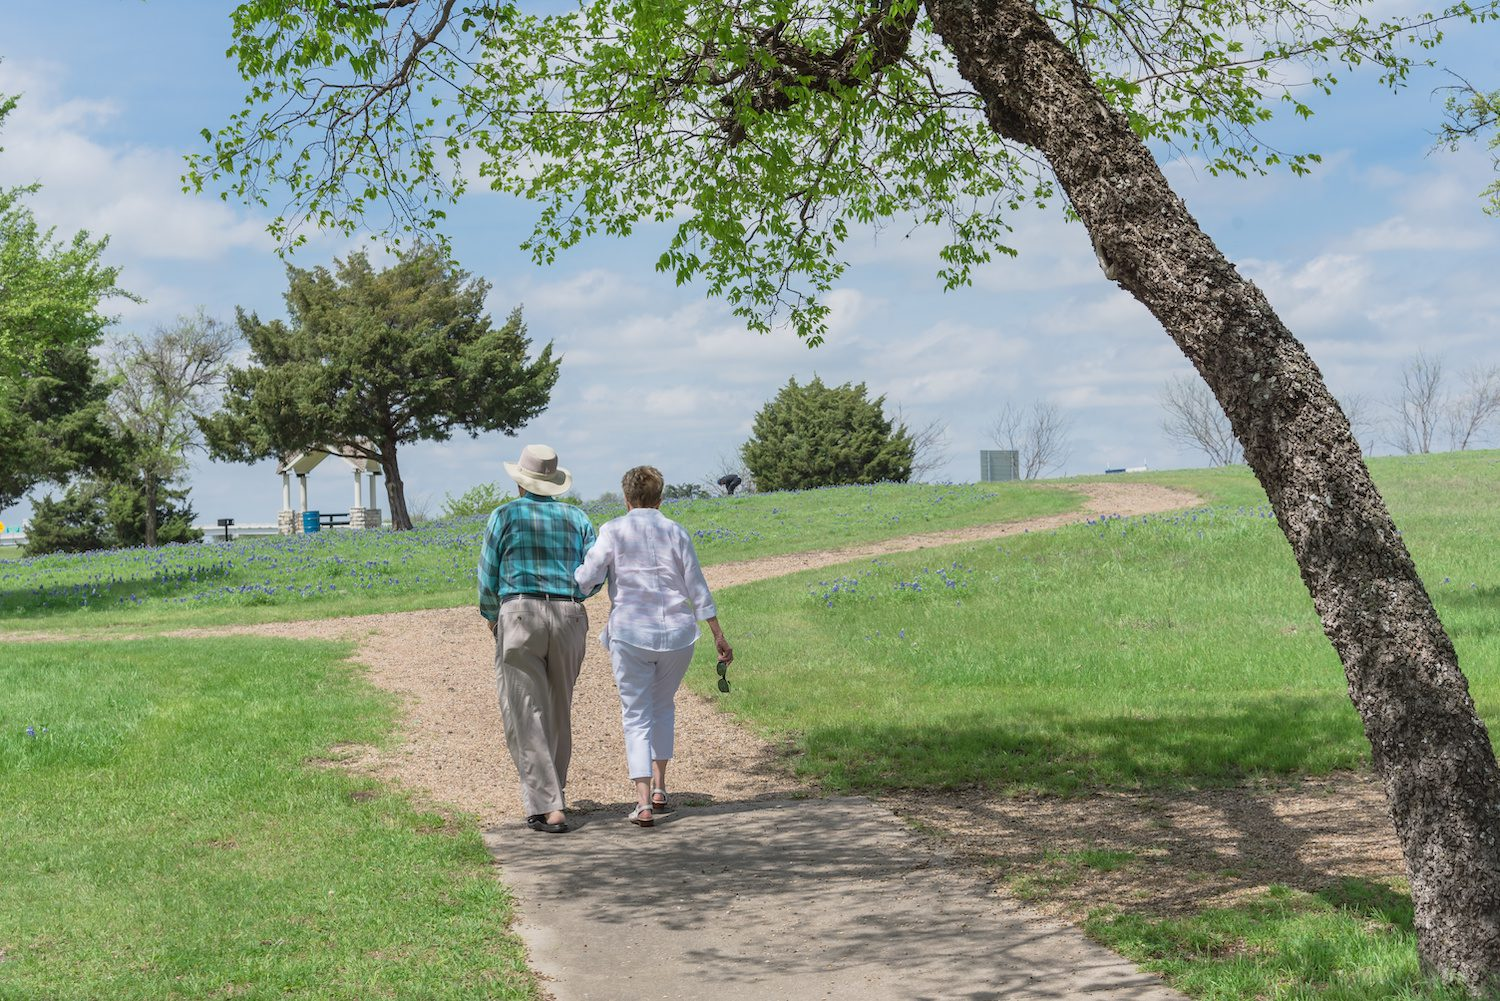 Rear view of happy Caucasian senior couple walking on pathway in the Bluebonnet park in Ennis, Texas, USA. Lady right hand hold sunglasses. Free, clear, healthy and happy retirement concept | Clarity Hearing